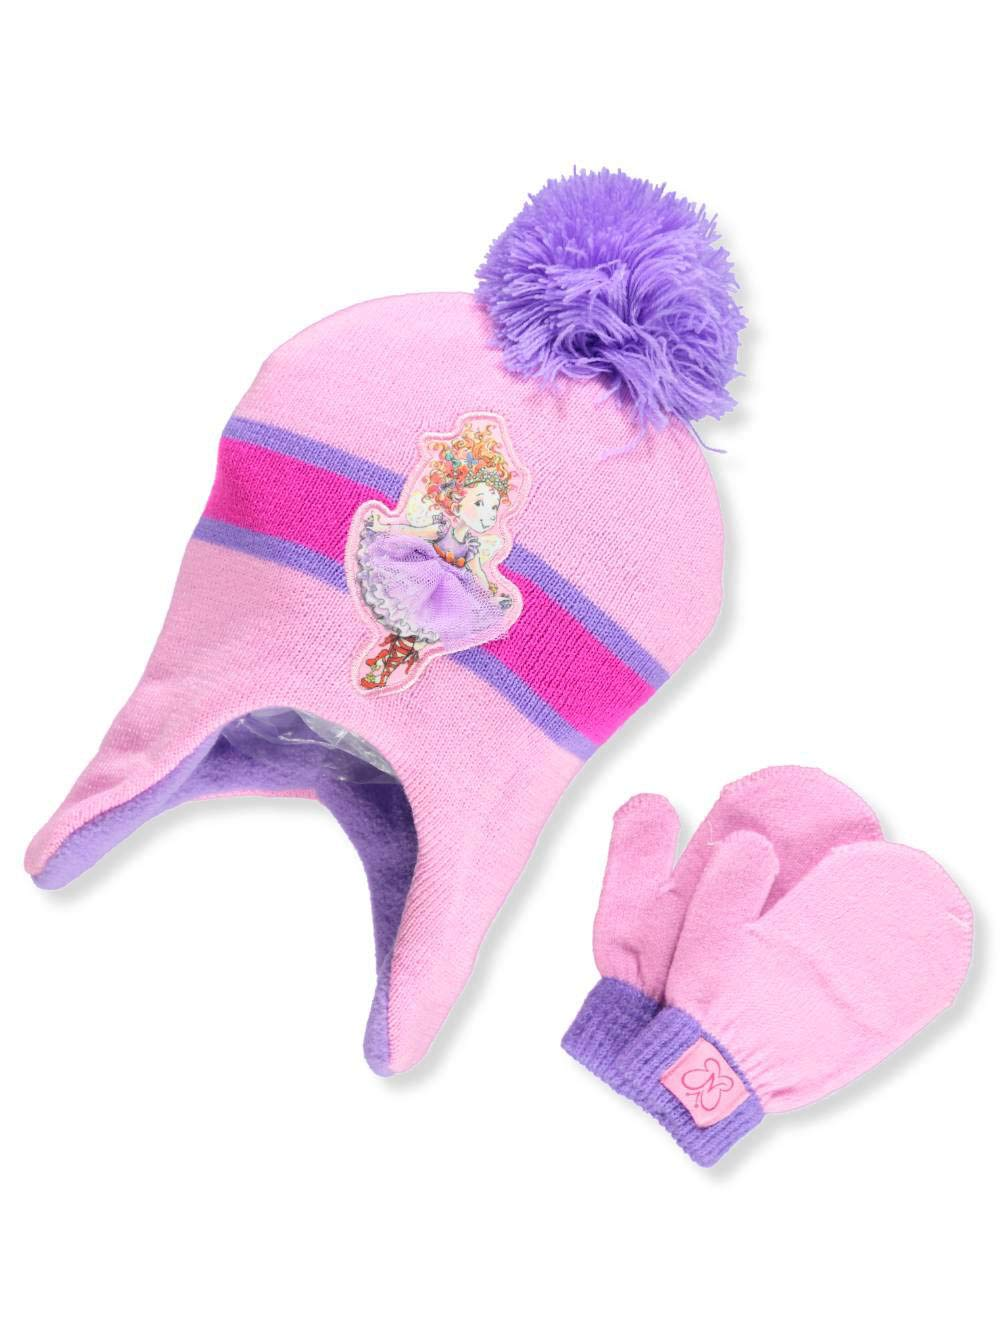 Fancy Nancy Big Girls' Beanie & Mittens Set - pink/purple, one size Nickelodeon